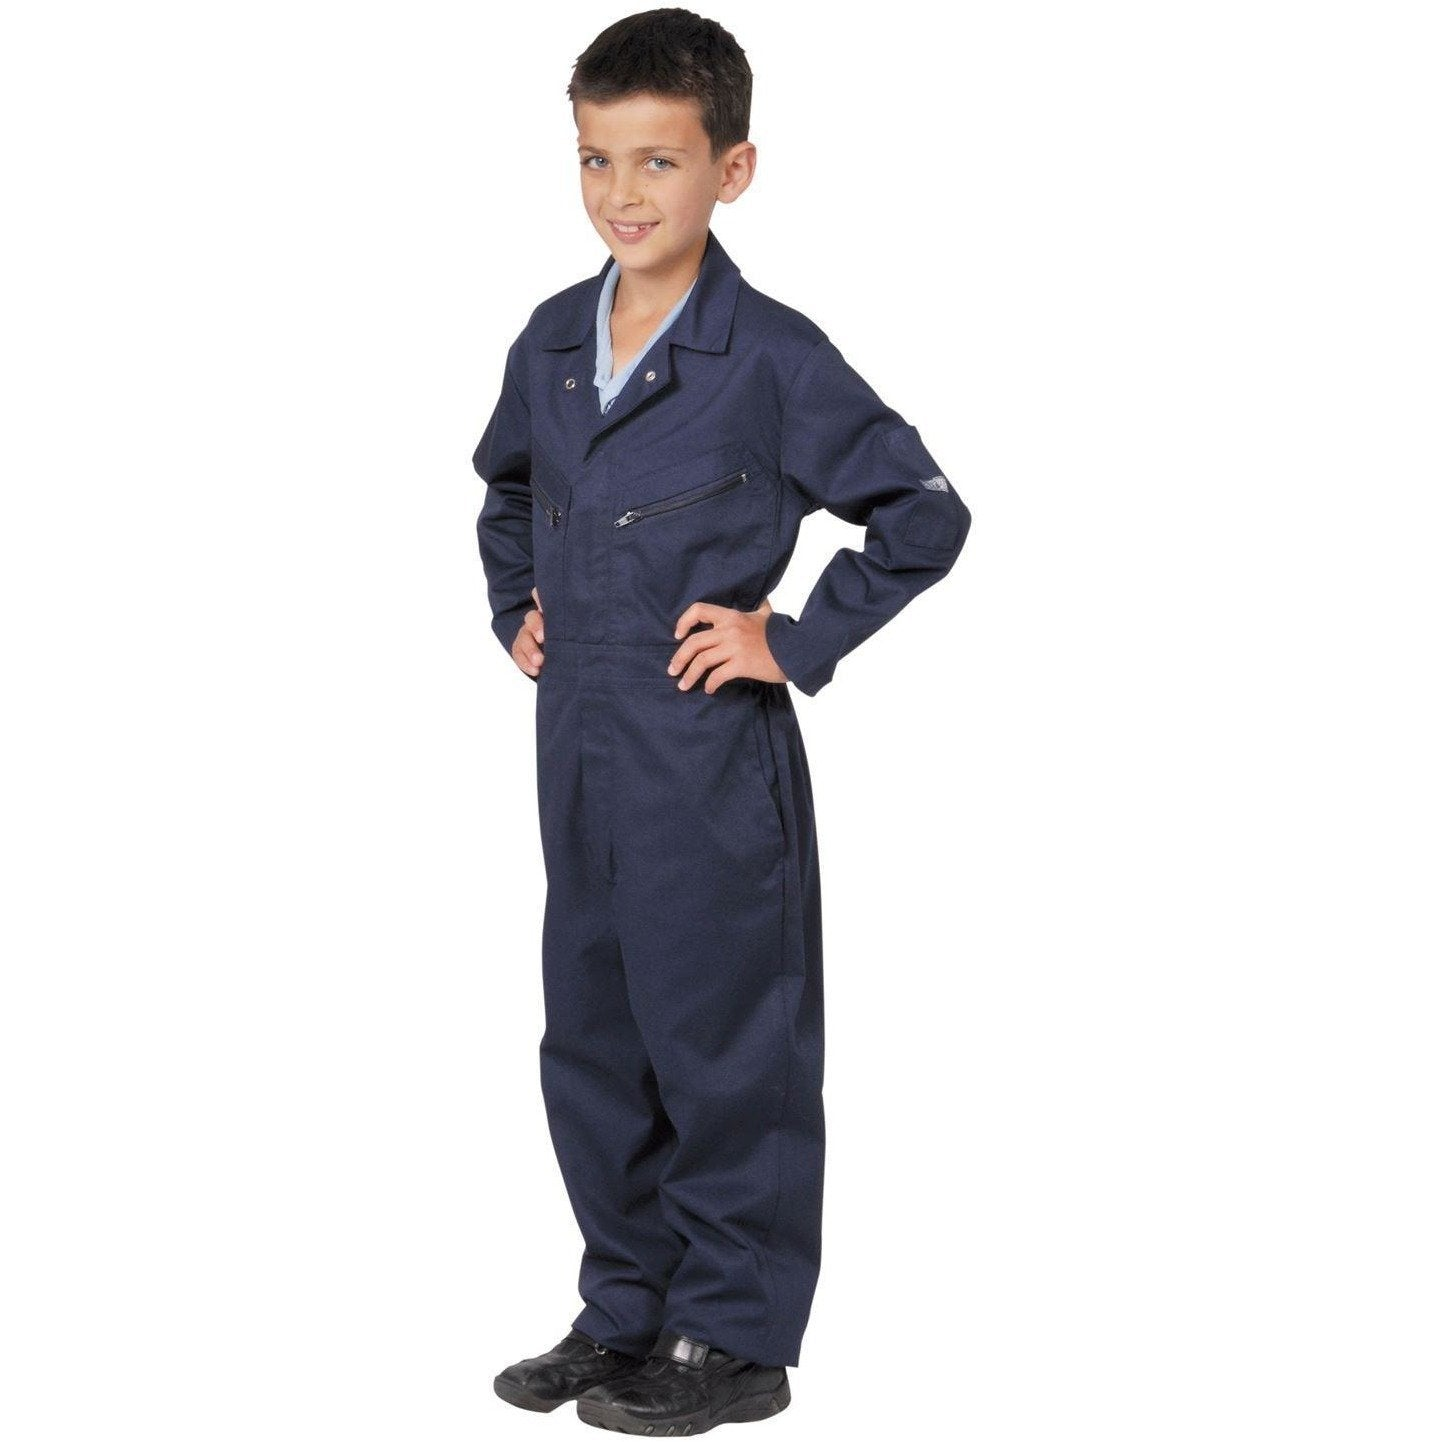 Portwest Youth's Coverall C890 - reid outdoors